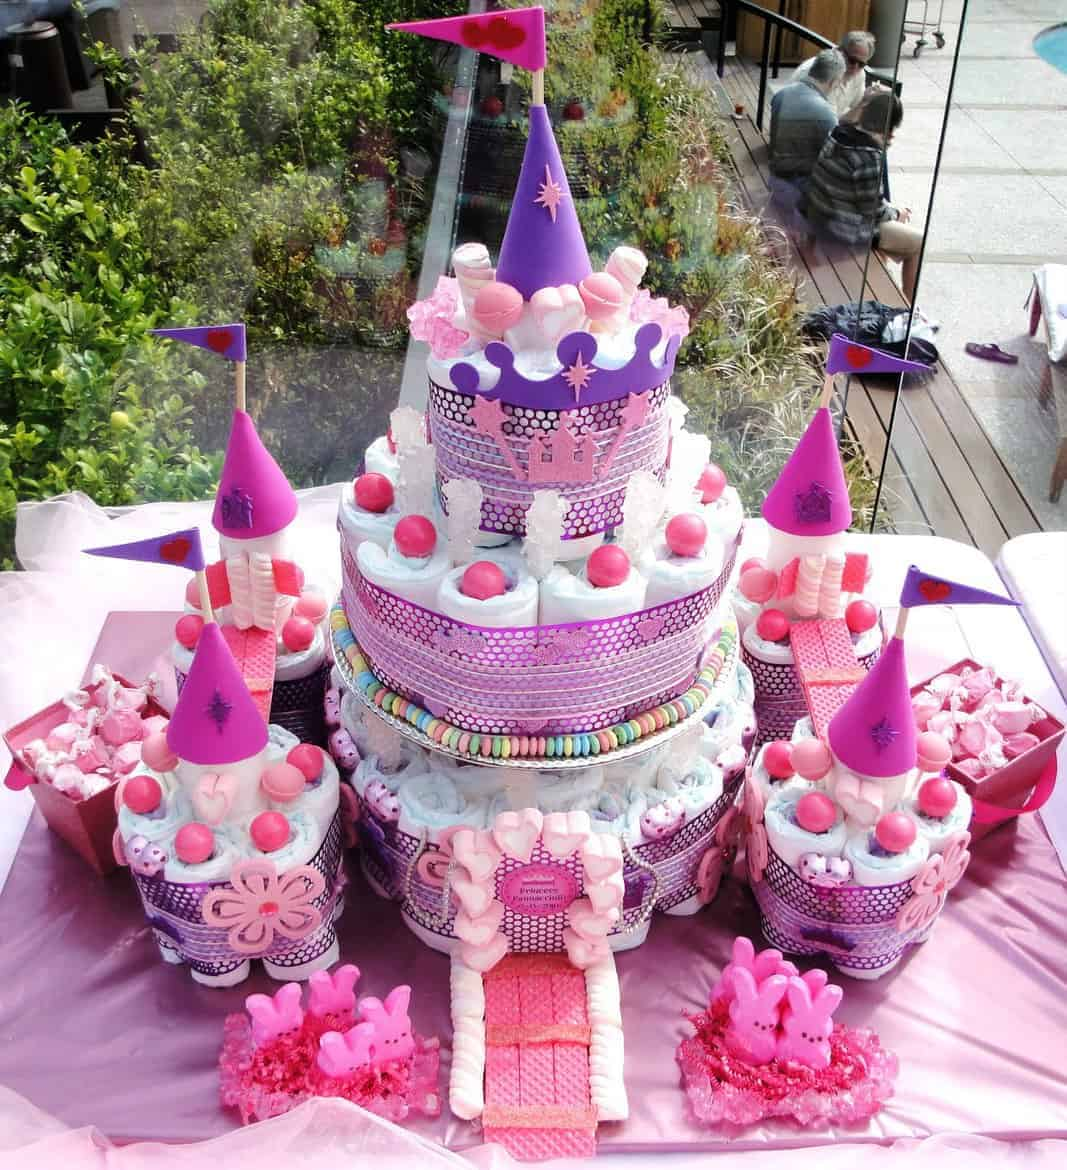 Cutest Diaper Cakes Ever